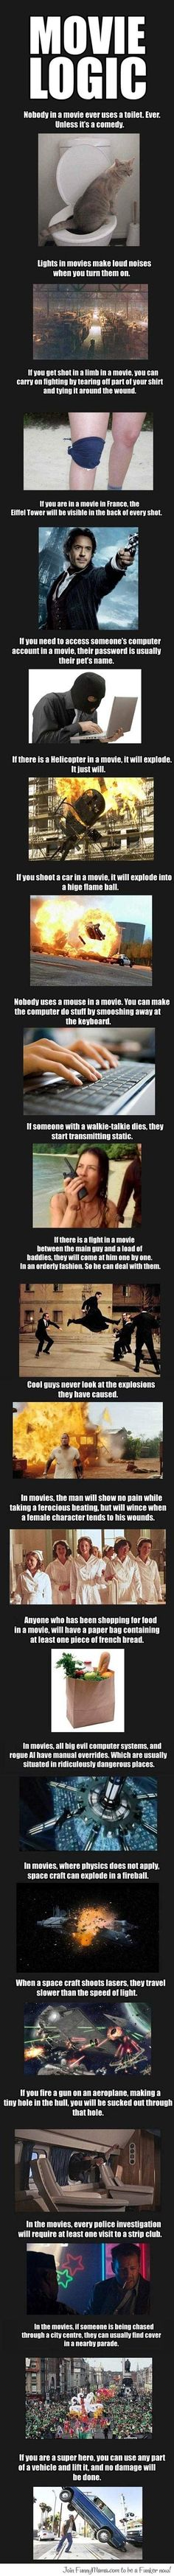 Things that only happen in movies...